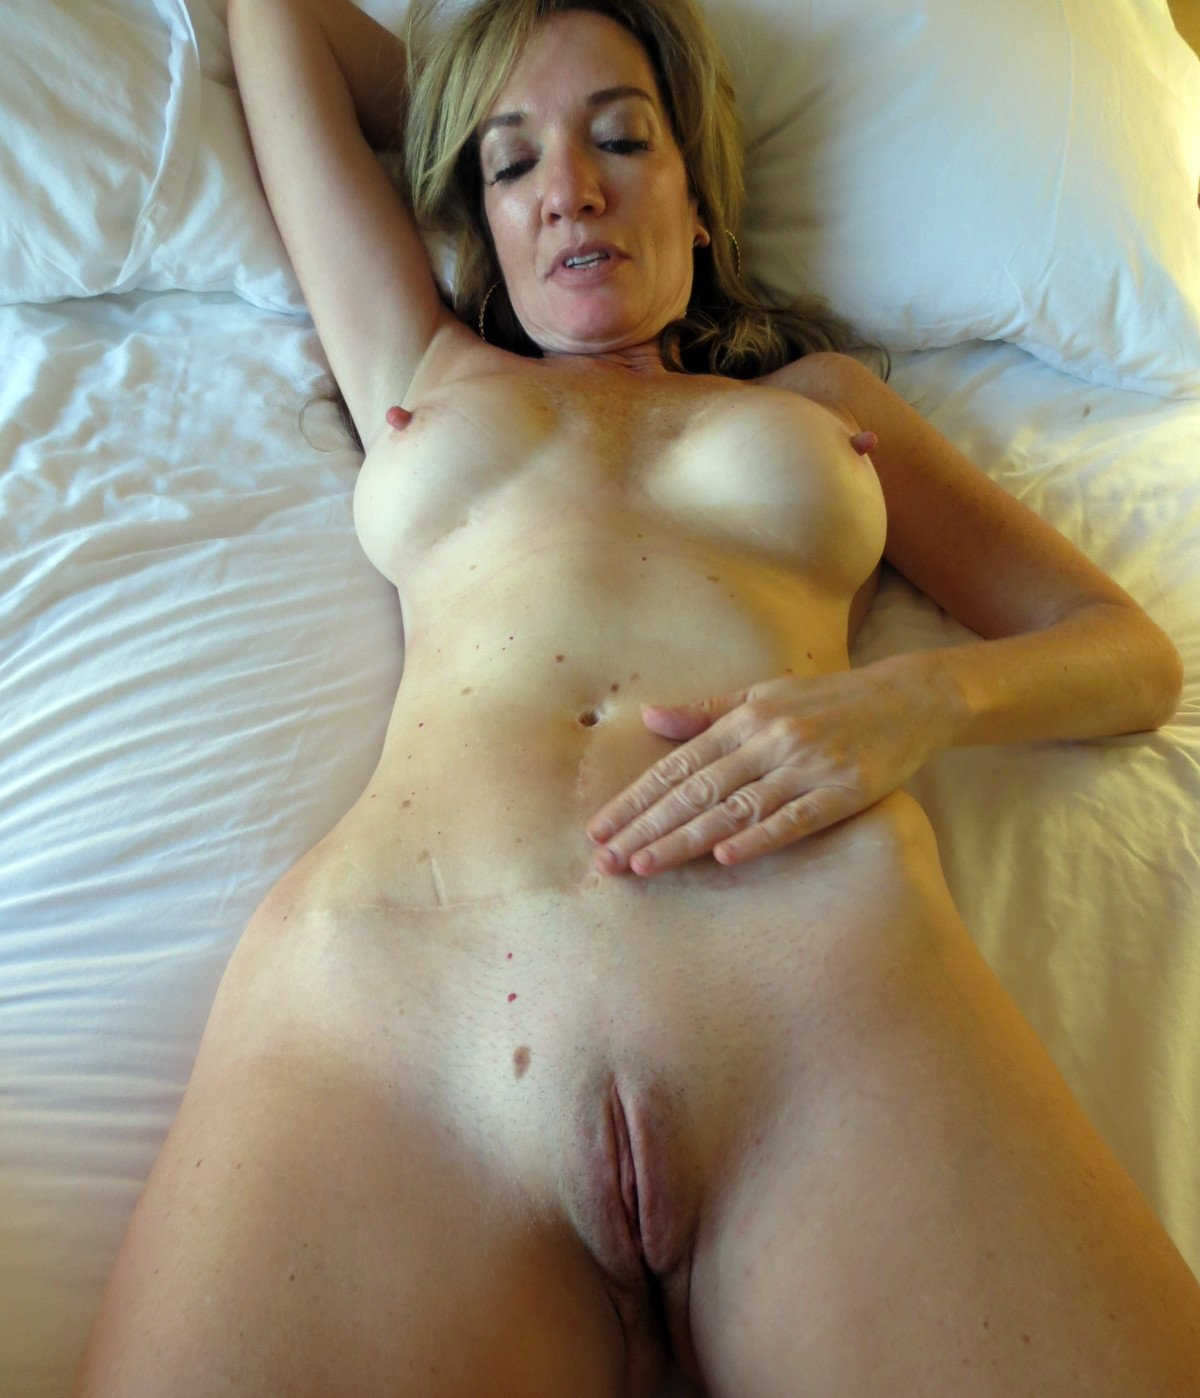 Nude mature wives mormon remarkable, rather